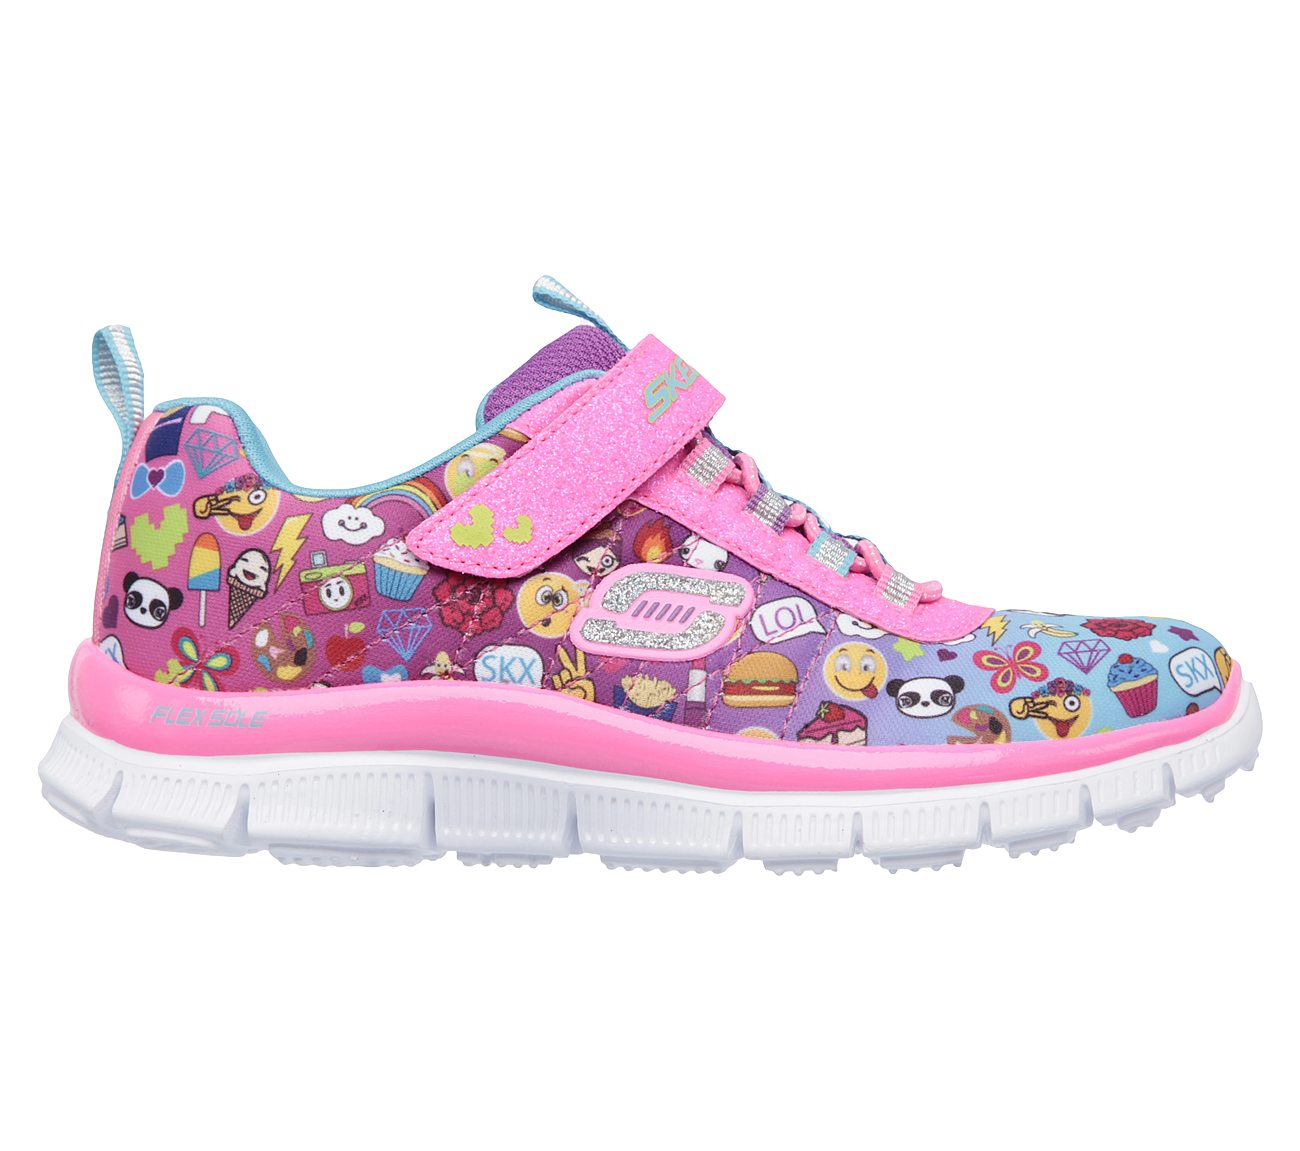 Skech Appeal - Pixel Princess. $45.00. Hover to zoom. MULTI